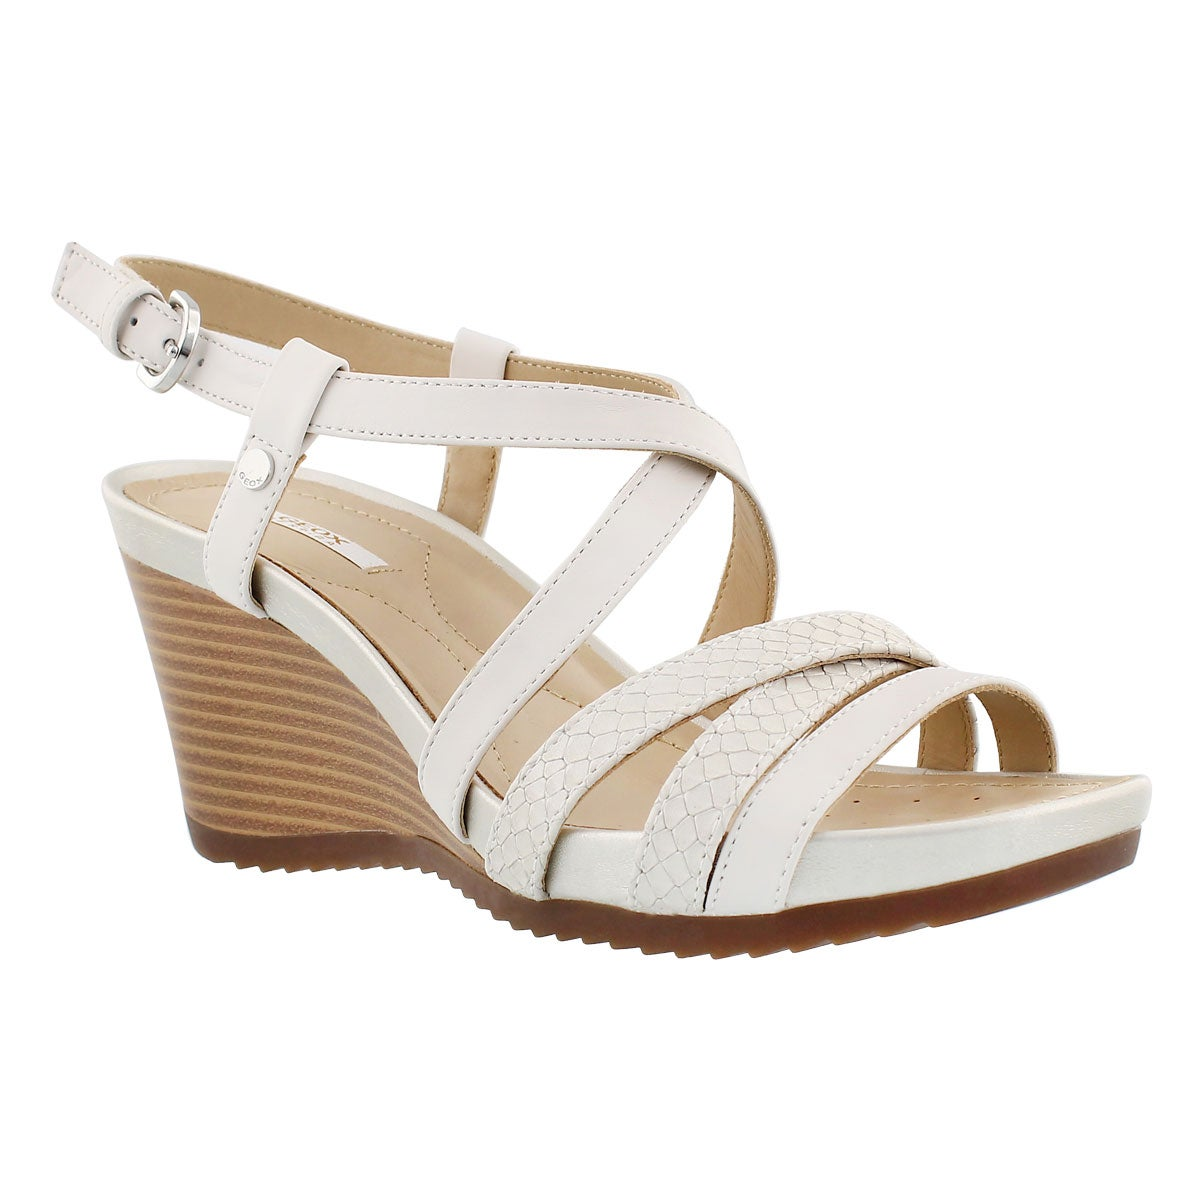 Women's NEW RORIE white wedge sandals